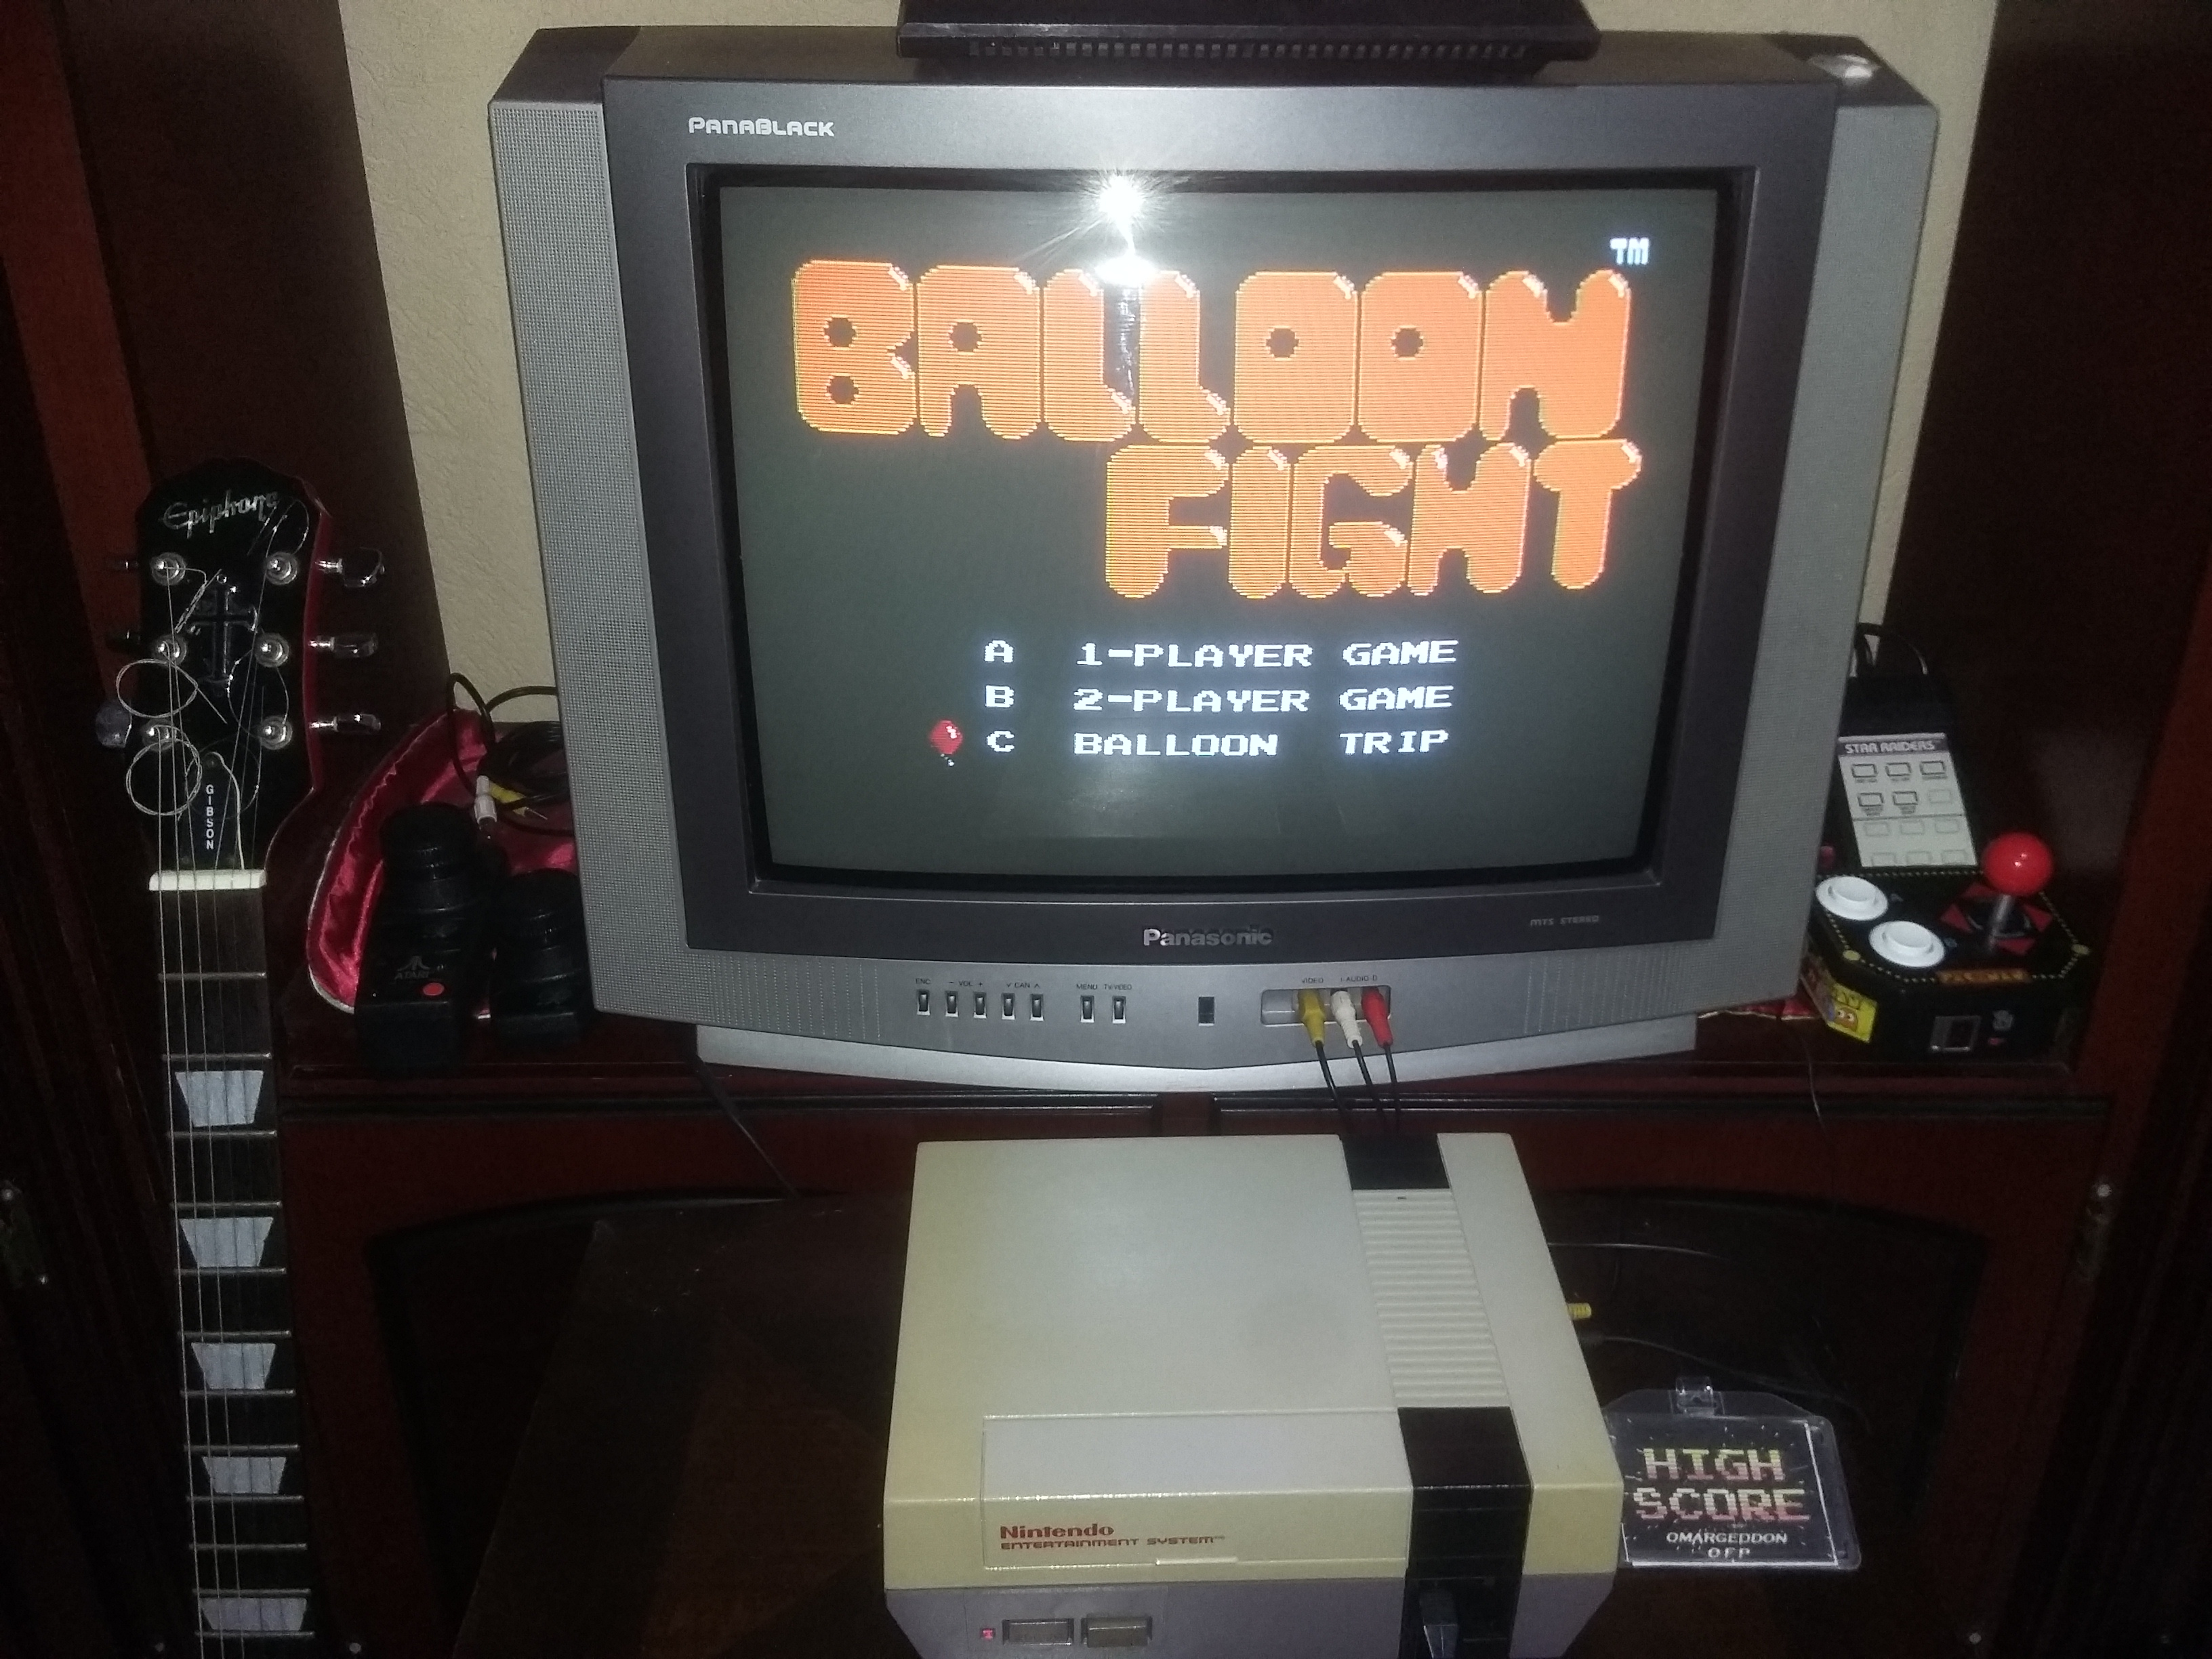 omargeddon: Balloon Fight: Game C [Balloon Trip] (NES/Famicom) 27,120 points on 2017-08-08 00:41:09